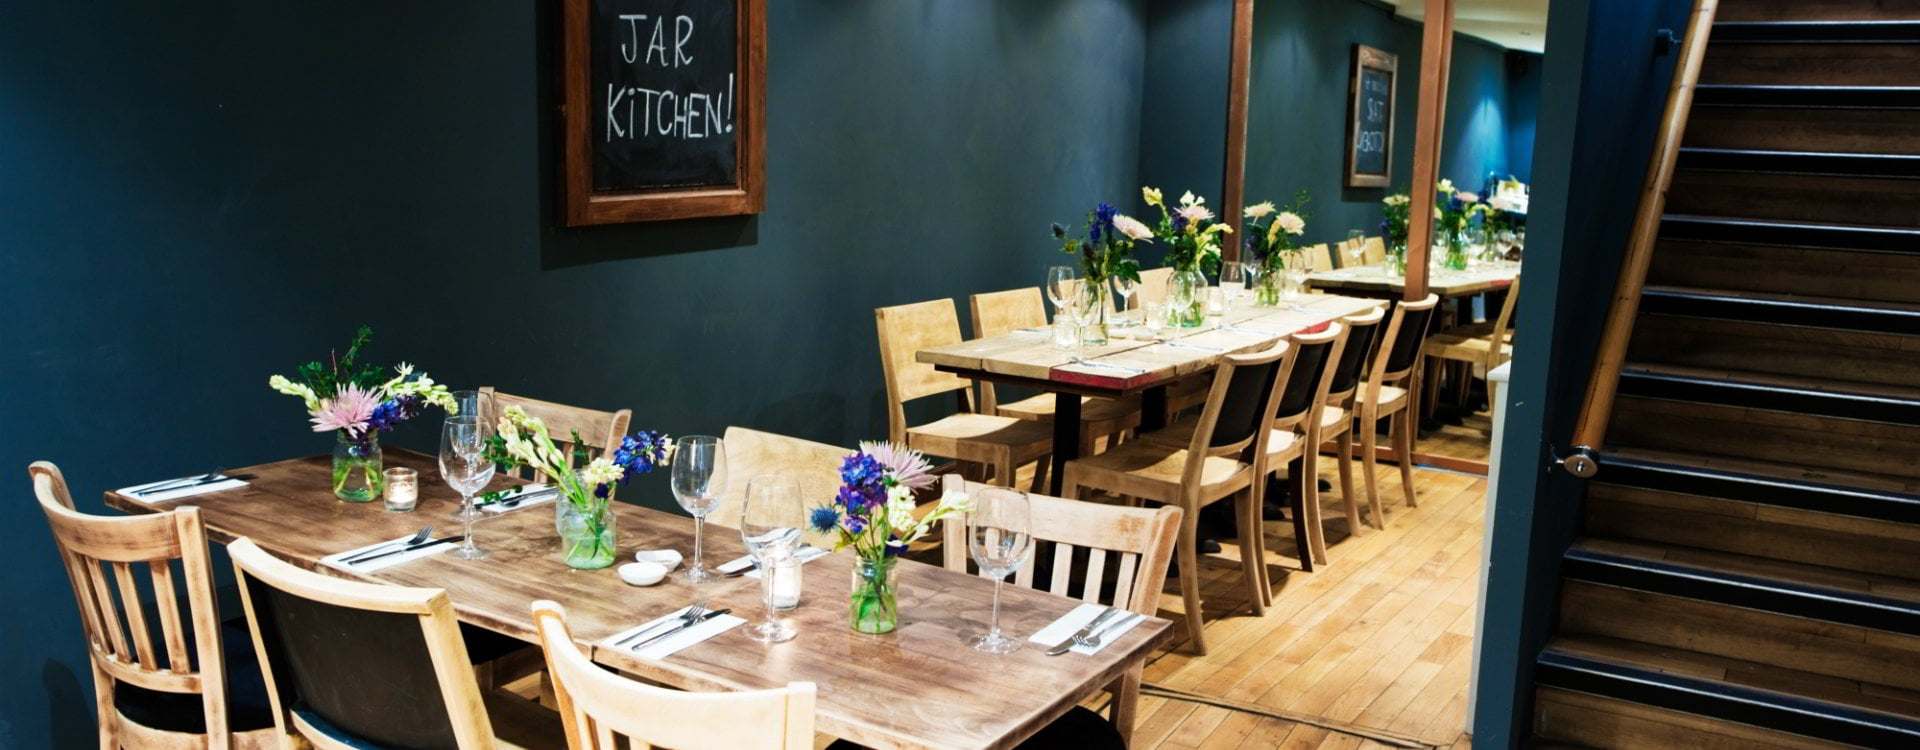 Covent Garden Kitchen Jar Kitchen A Cozy Modern European Eatery In Covent Garden